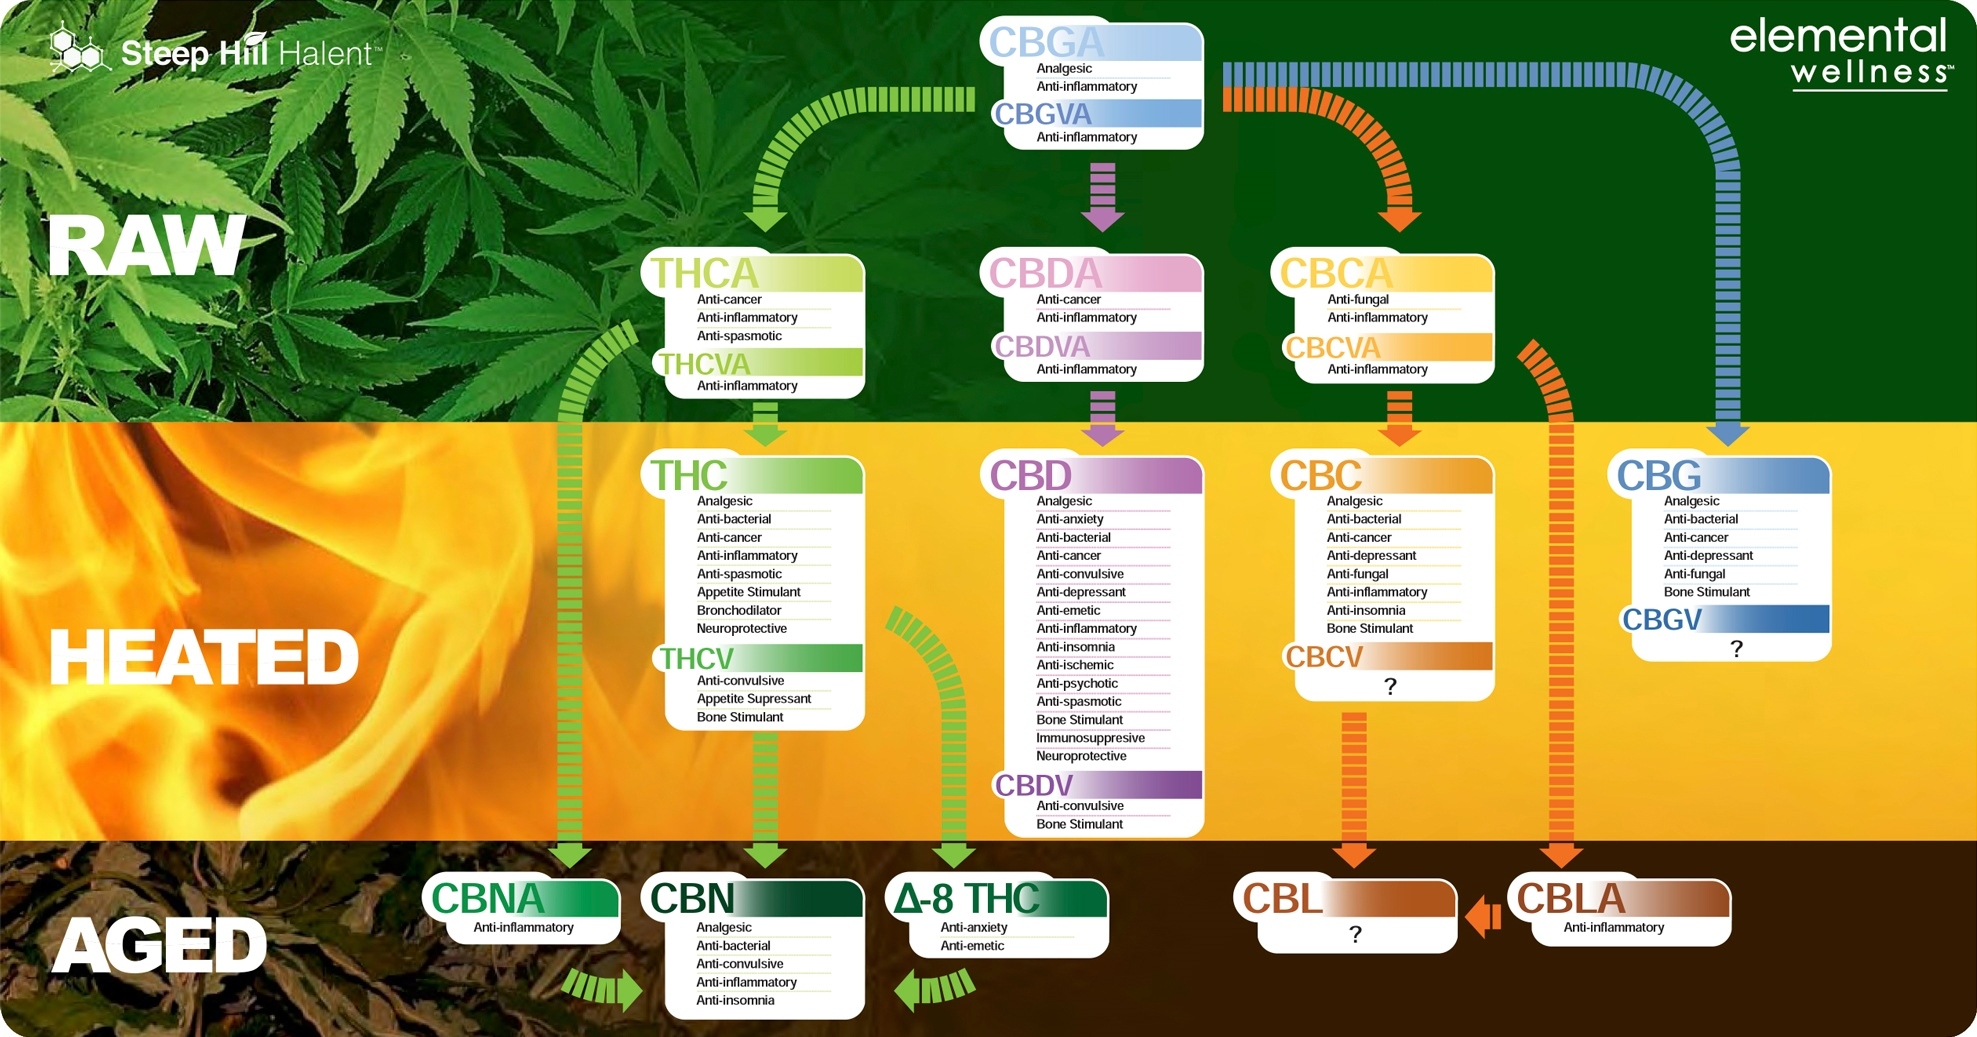 A chart detailing the three forms of cannabis: raw, heated, and aged